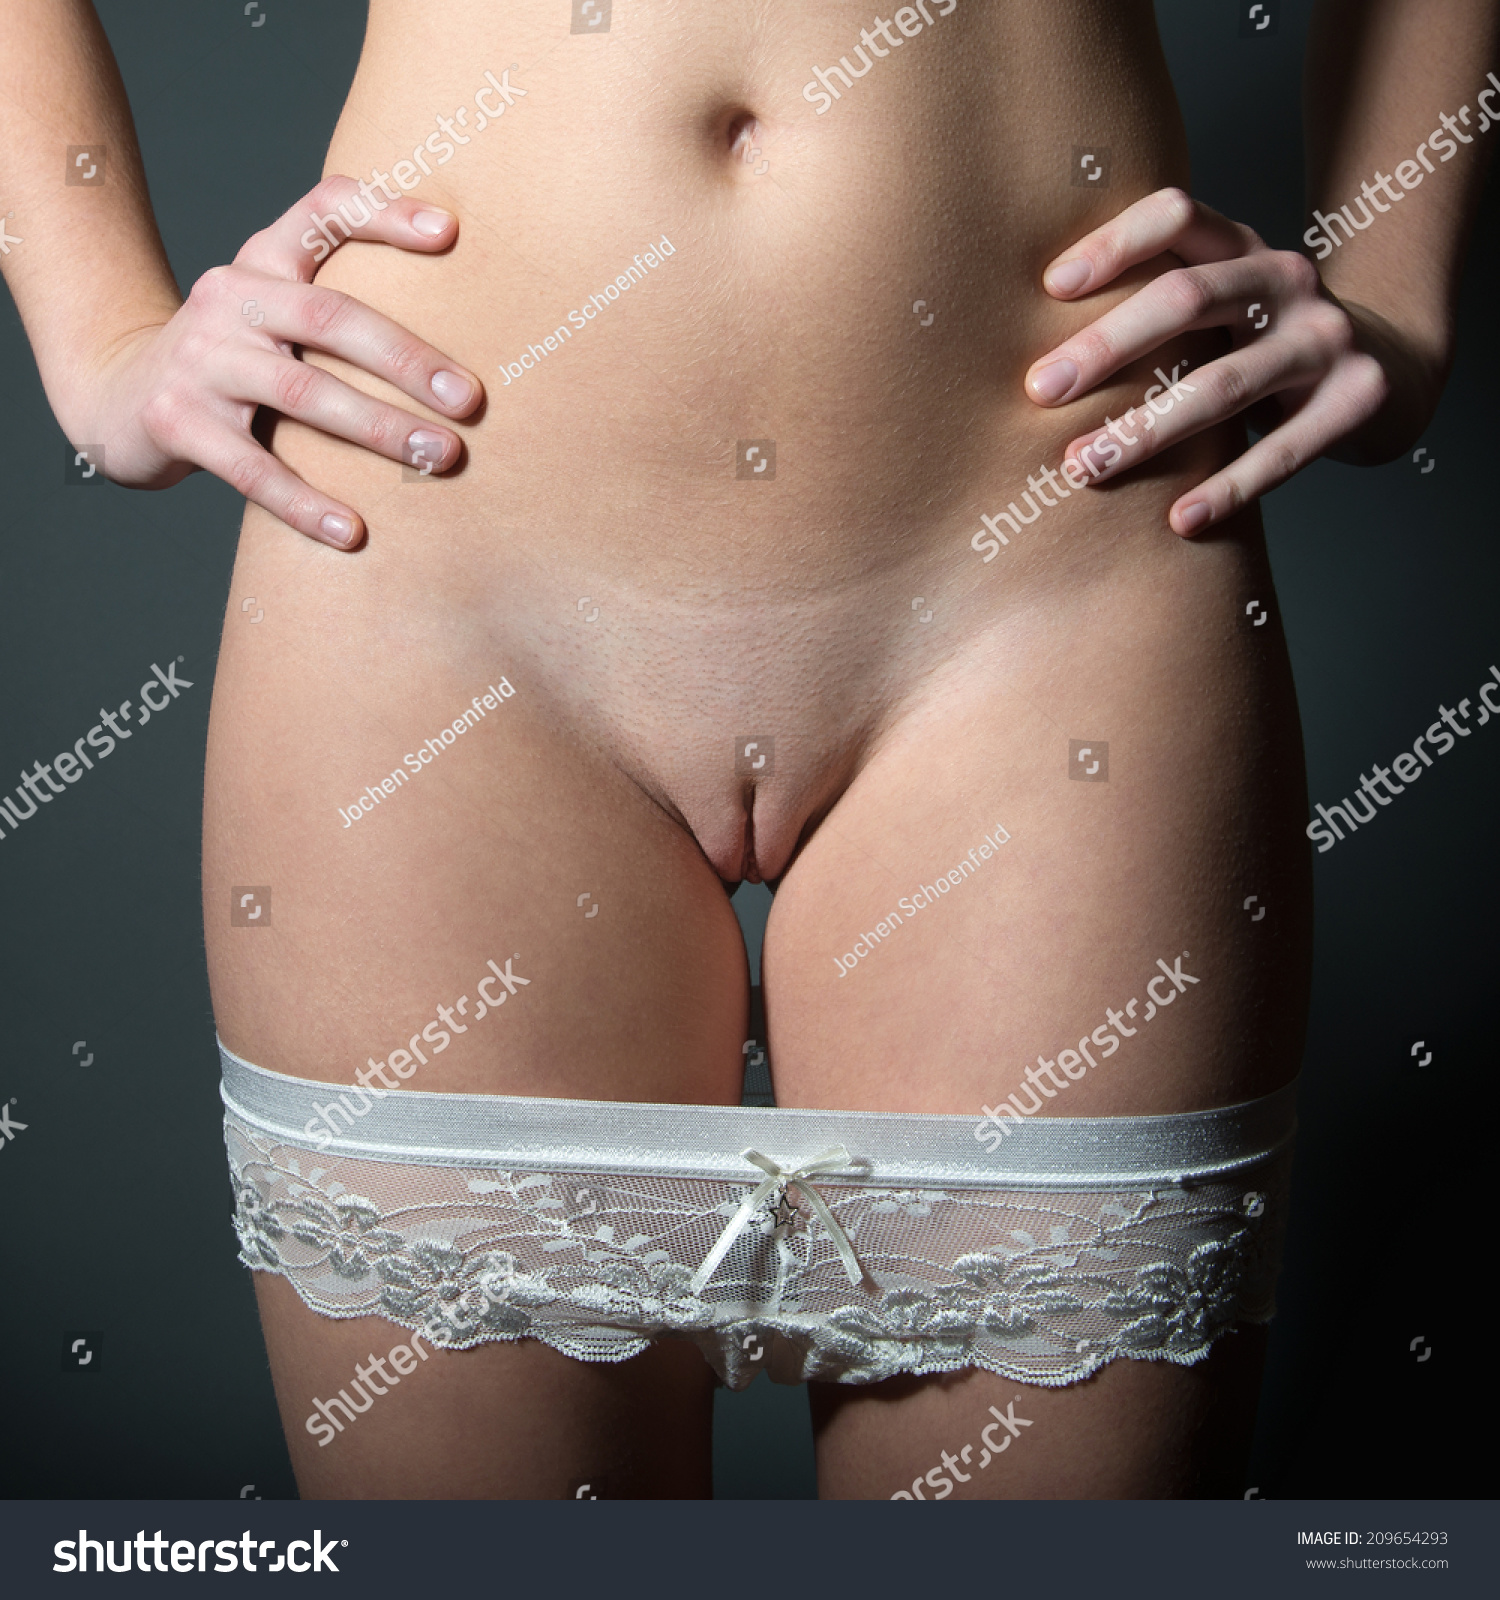 nude close women